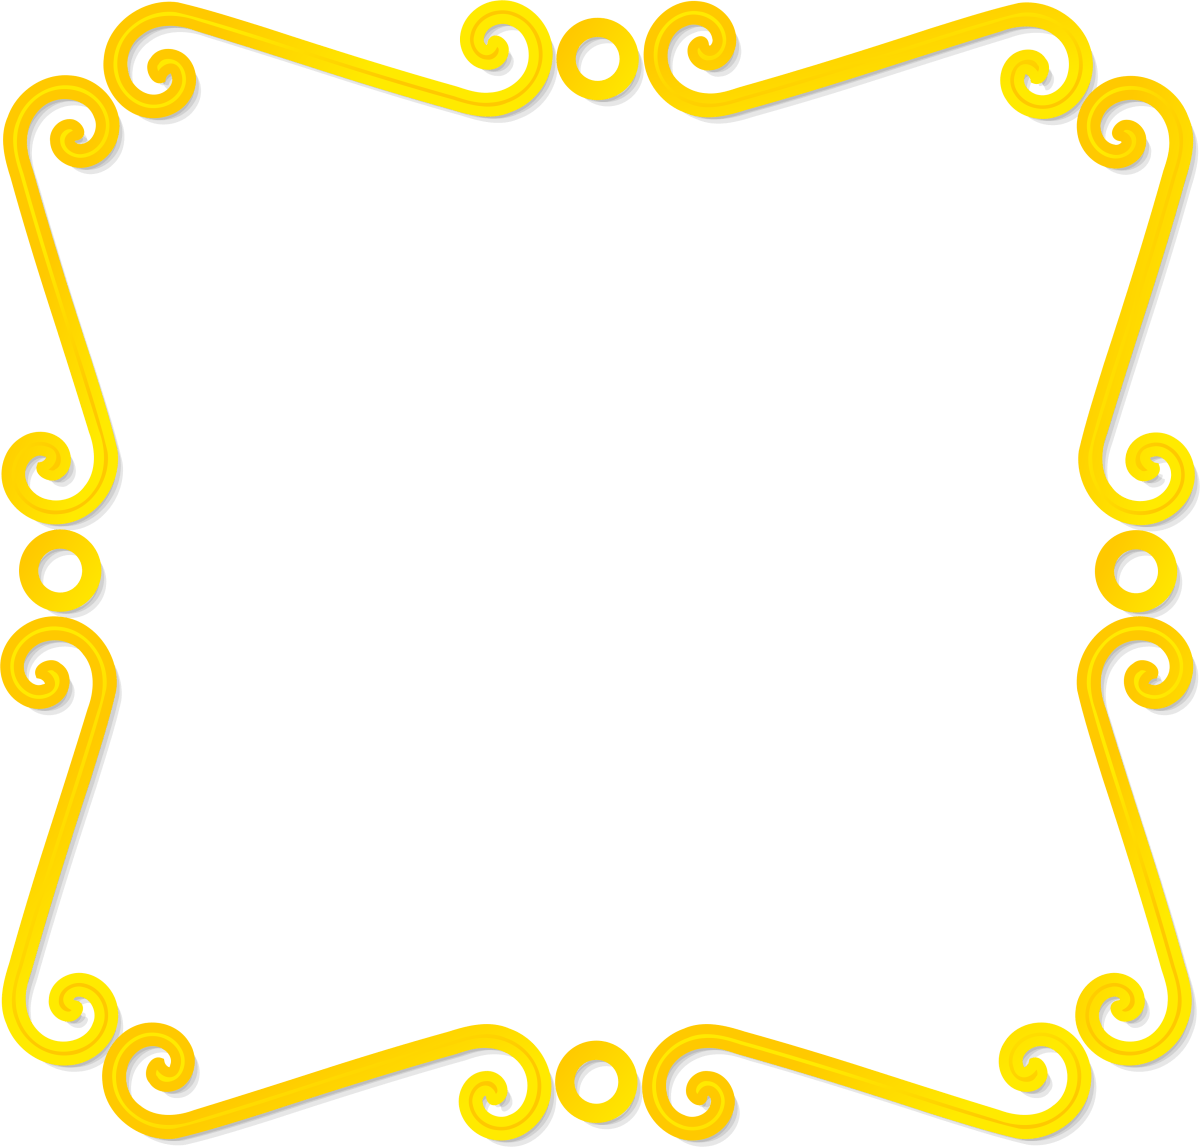 Yellow certificate frame border